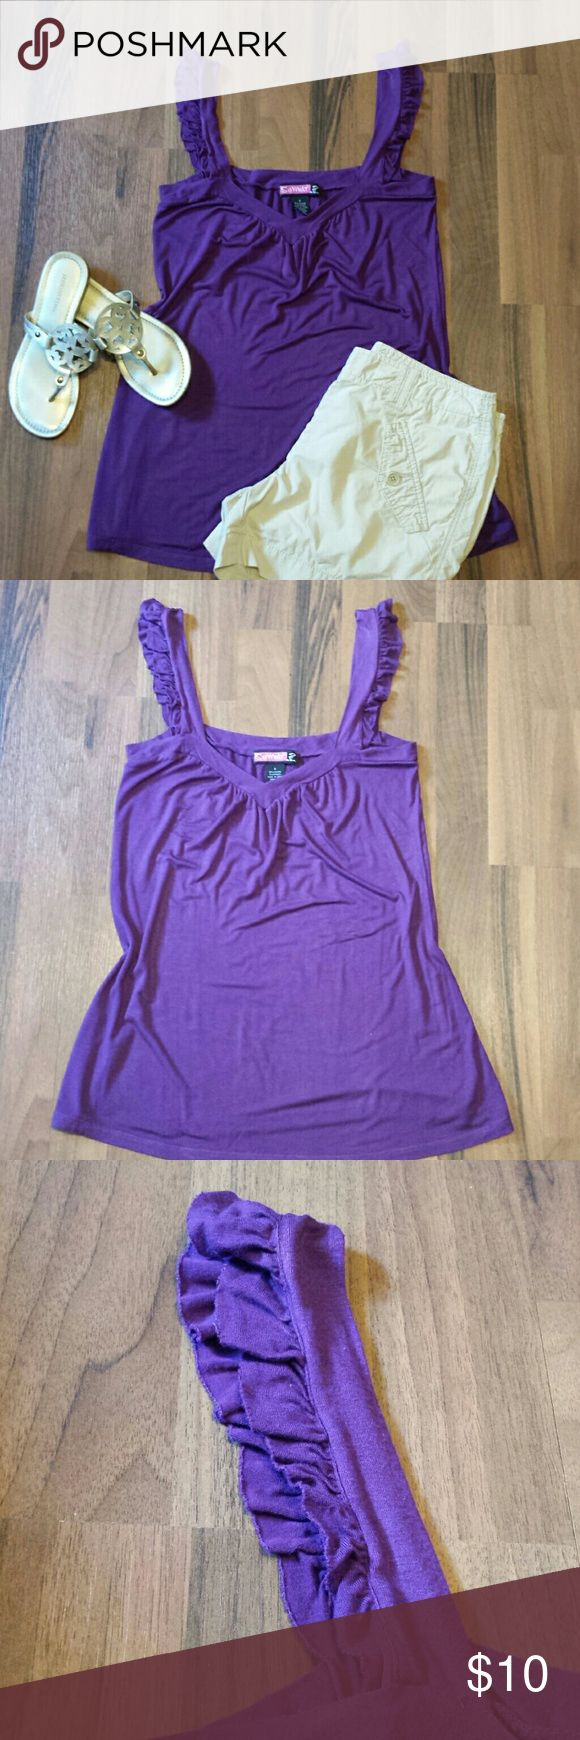 🔸5/$25🔸Purple Tank Top This cute, long & flowy tank top is great for a hot Summer day! It has pretty ruffled straps on each shoulder. Looks great with Chino shorts or denim! Great condition, no holes or stains & just a bit of pilling that naturally occurs after a wash & wear.  95% Viscose & 5% Spandex makes it stretchy & comfortable!  Measurements: Length 30 & Bust 17 Tops Tank Tops